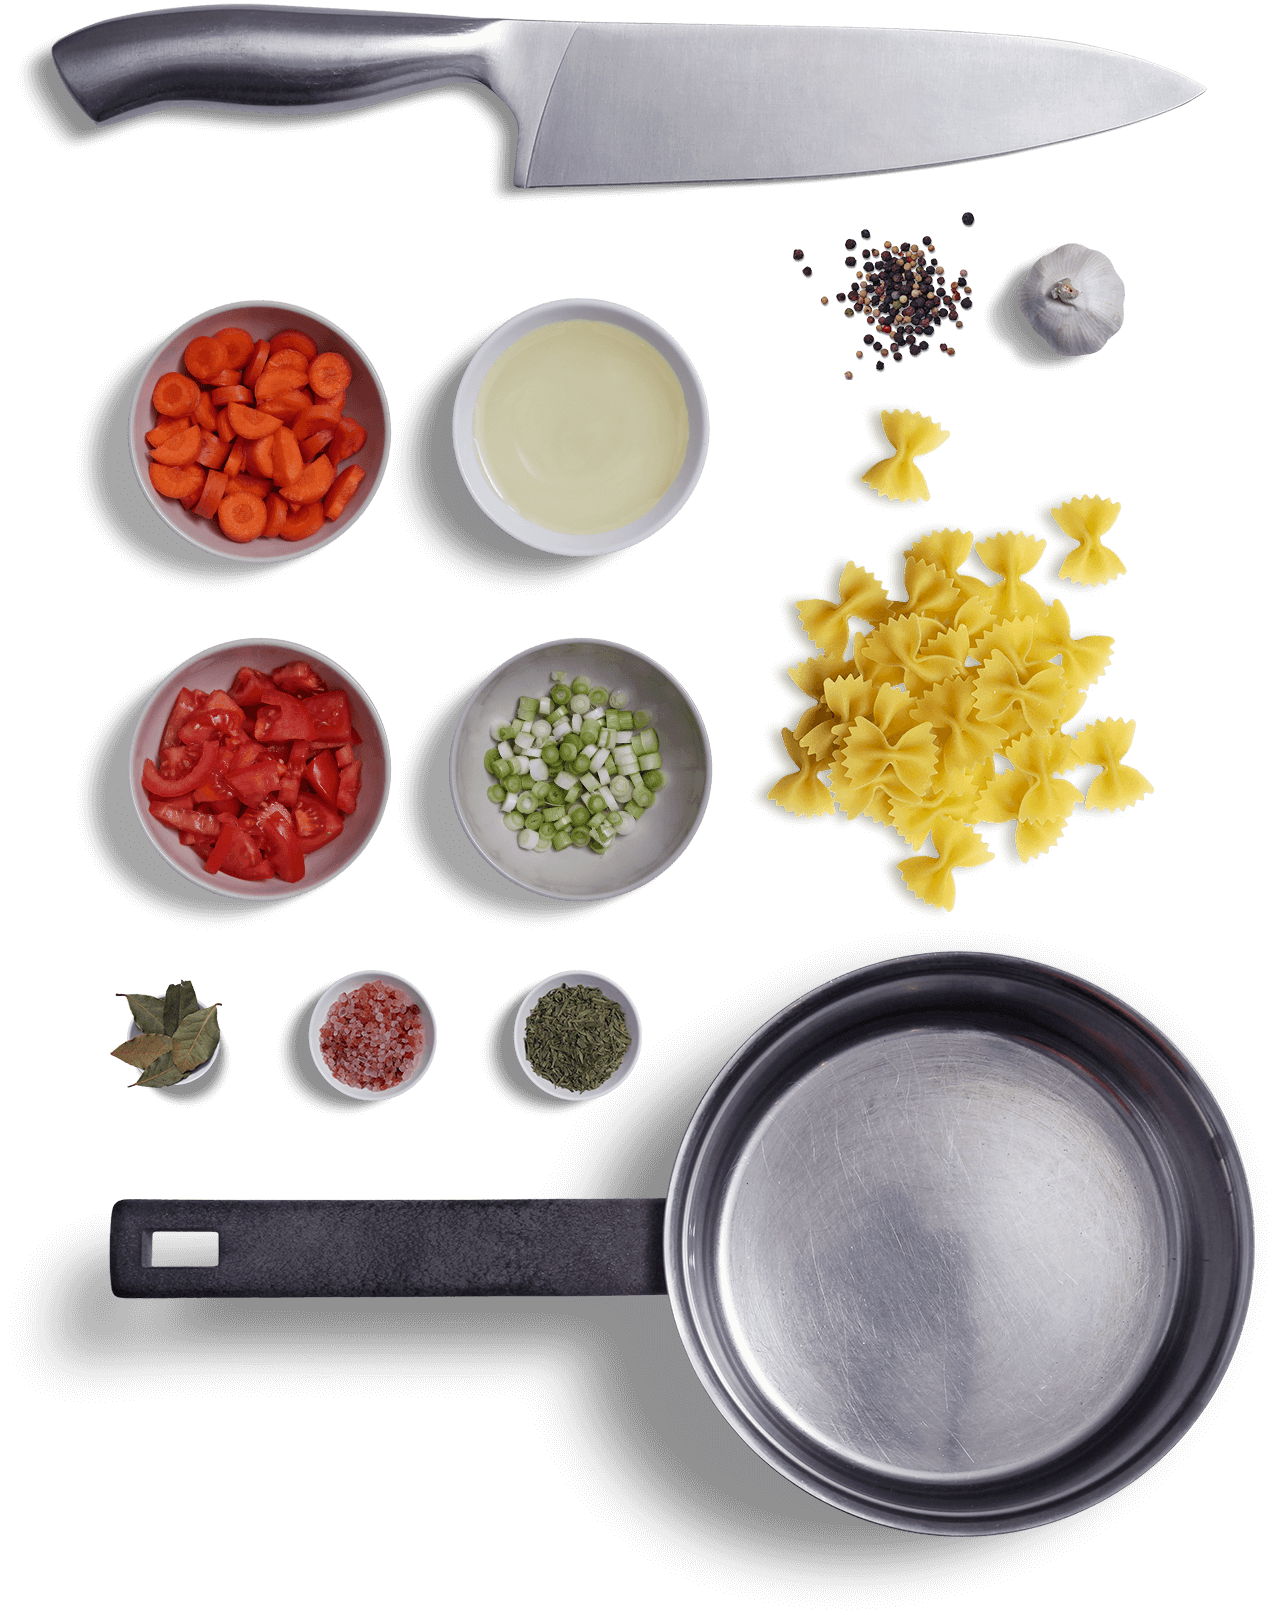 Arrangement of food ingredients for bowtie pasta soup